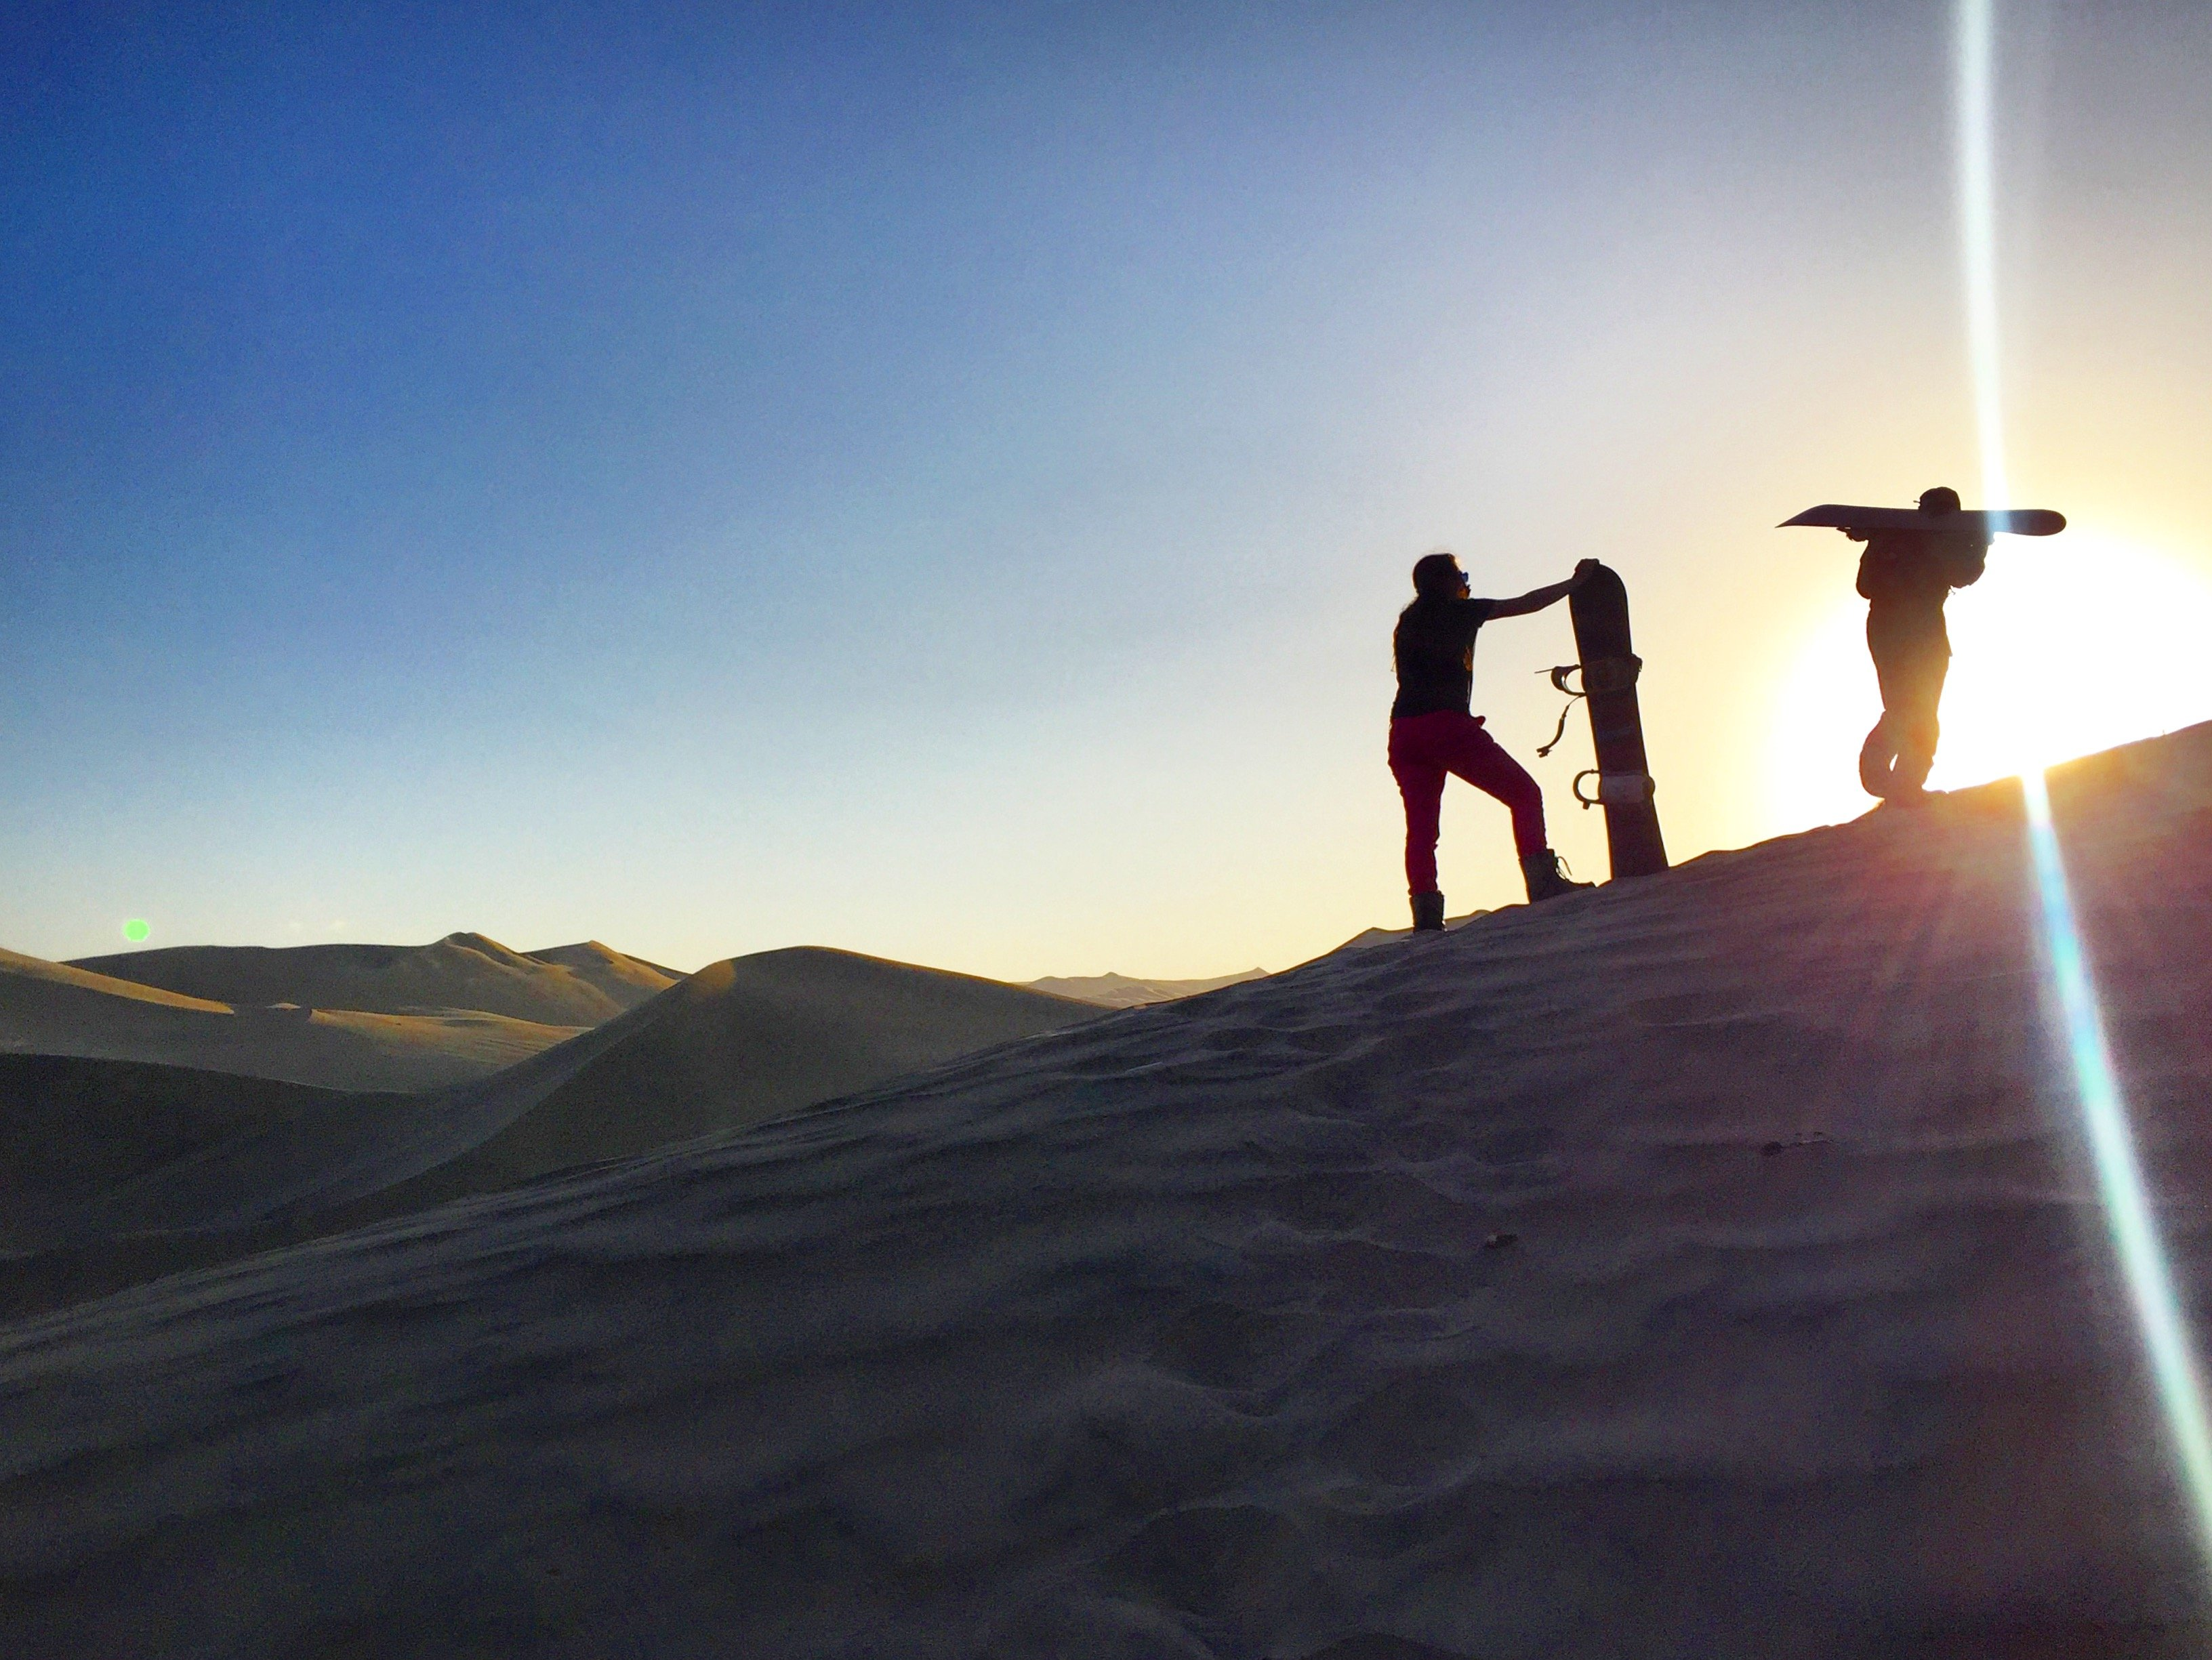 sand boarding in the Huacachina Oasis in Peru